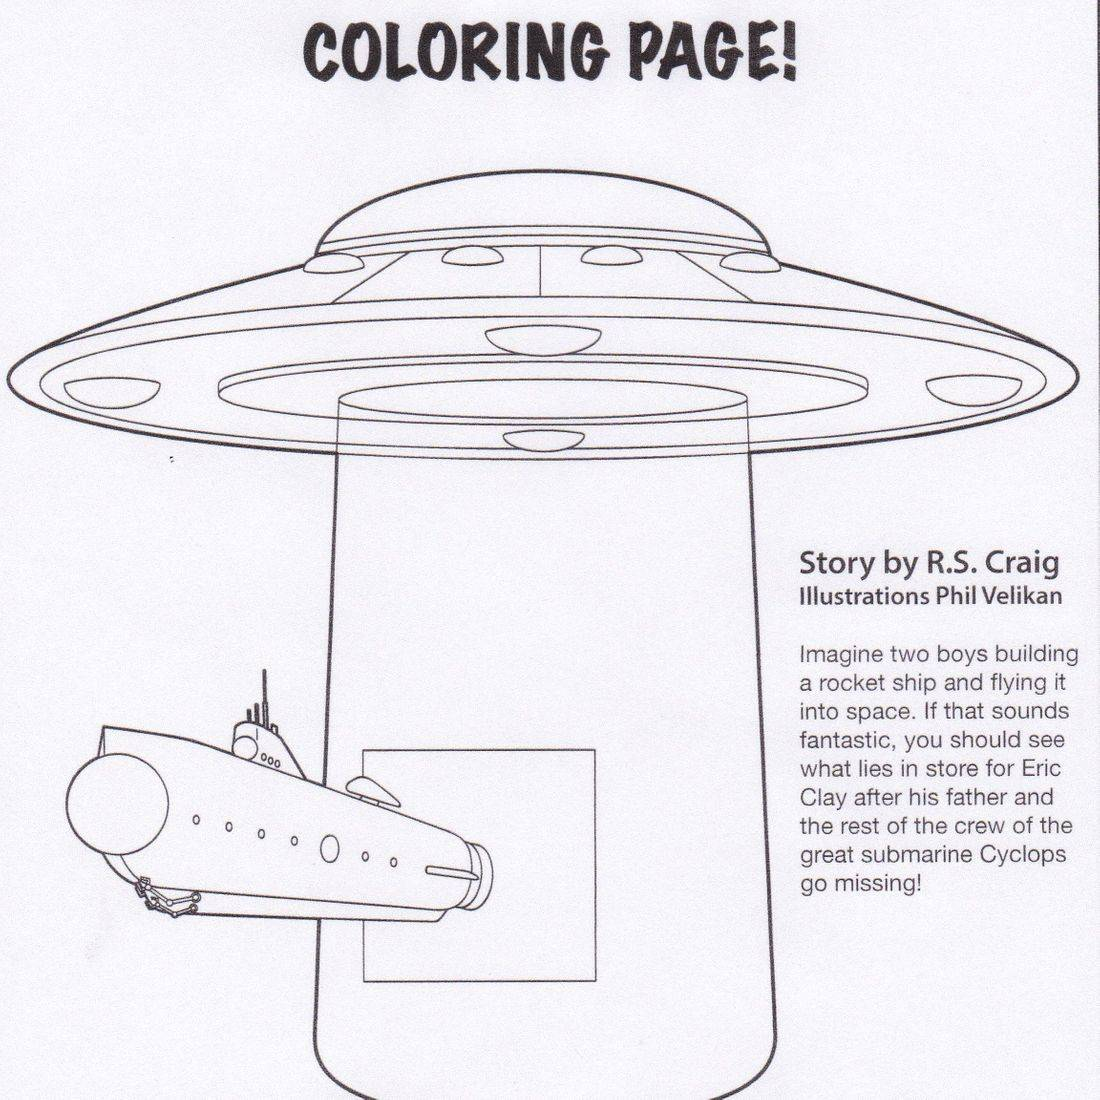 Print and color this page